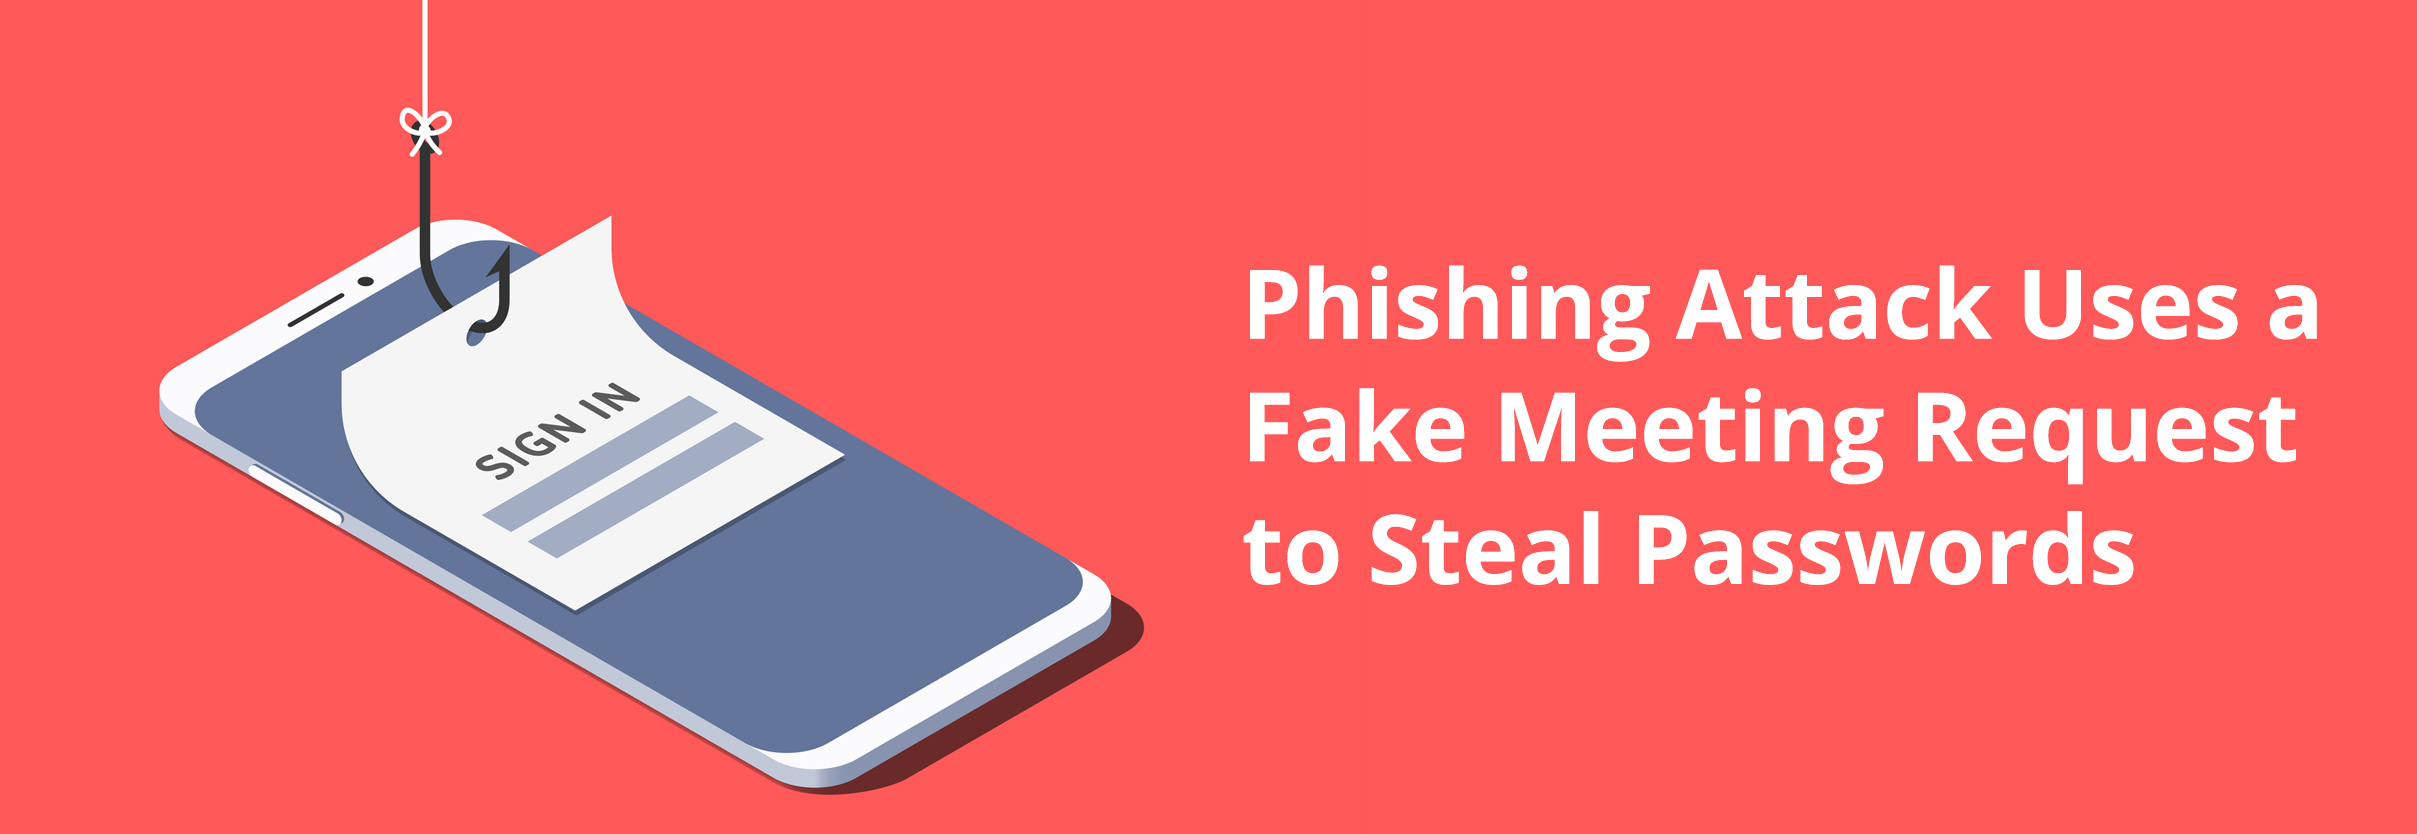 Phishing Attack Uses a Fake Meeting Request to Steal Passwords